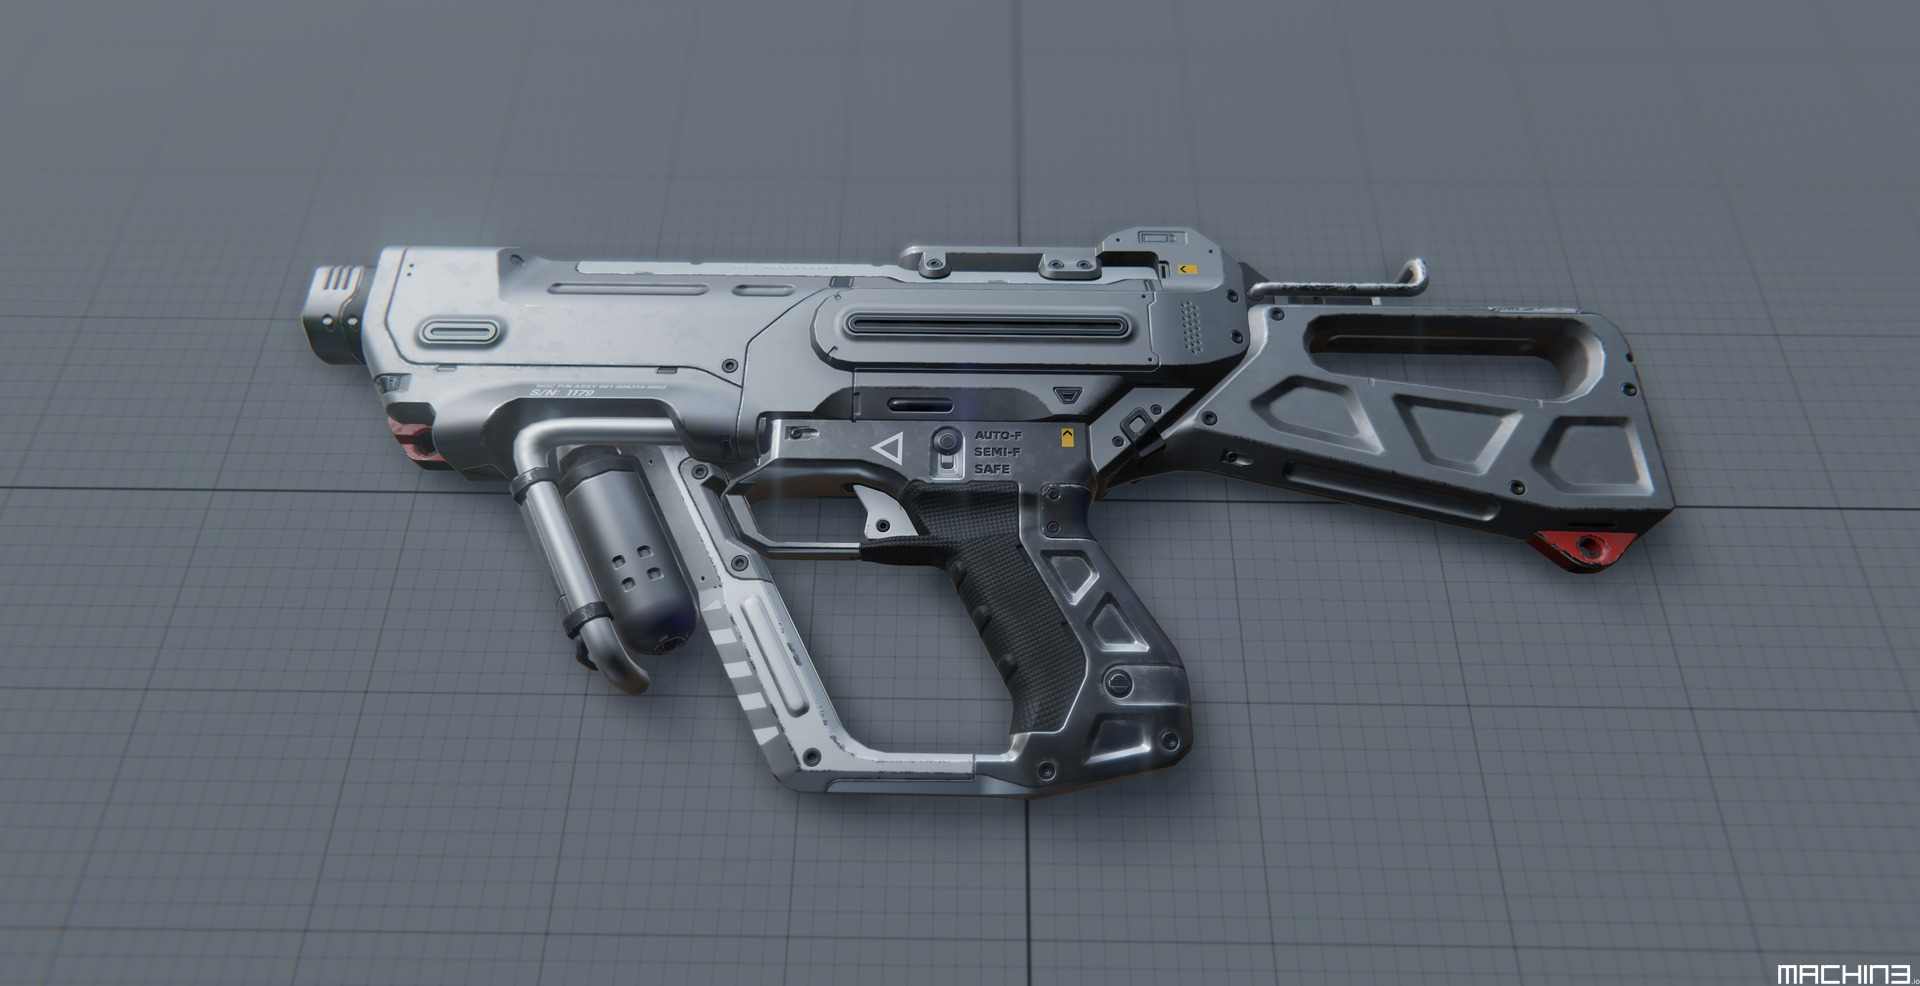 me-SMG SciFi Sub Machine Gun 3D Game Asset - MACHIN3 io